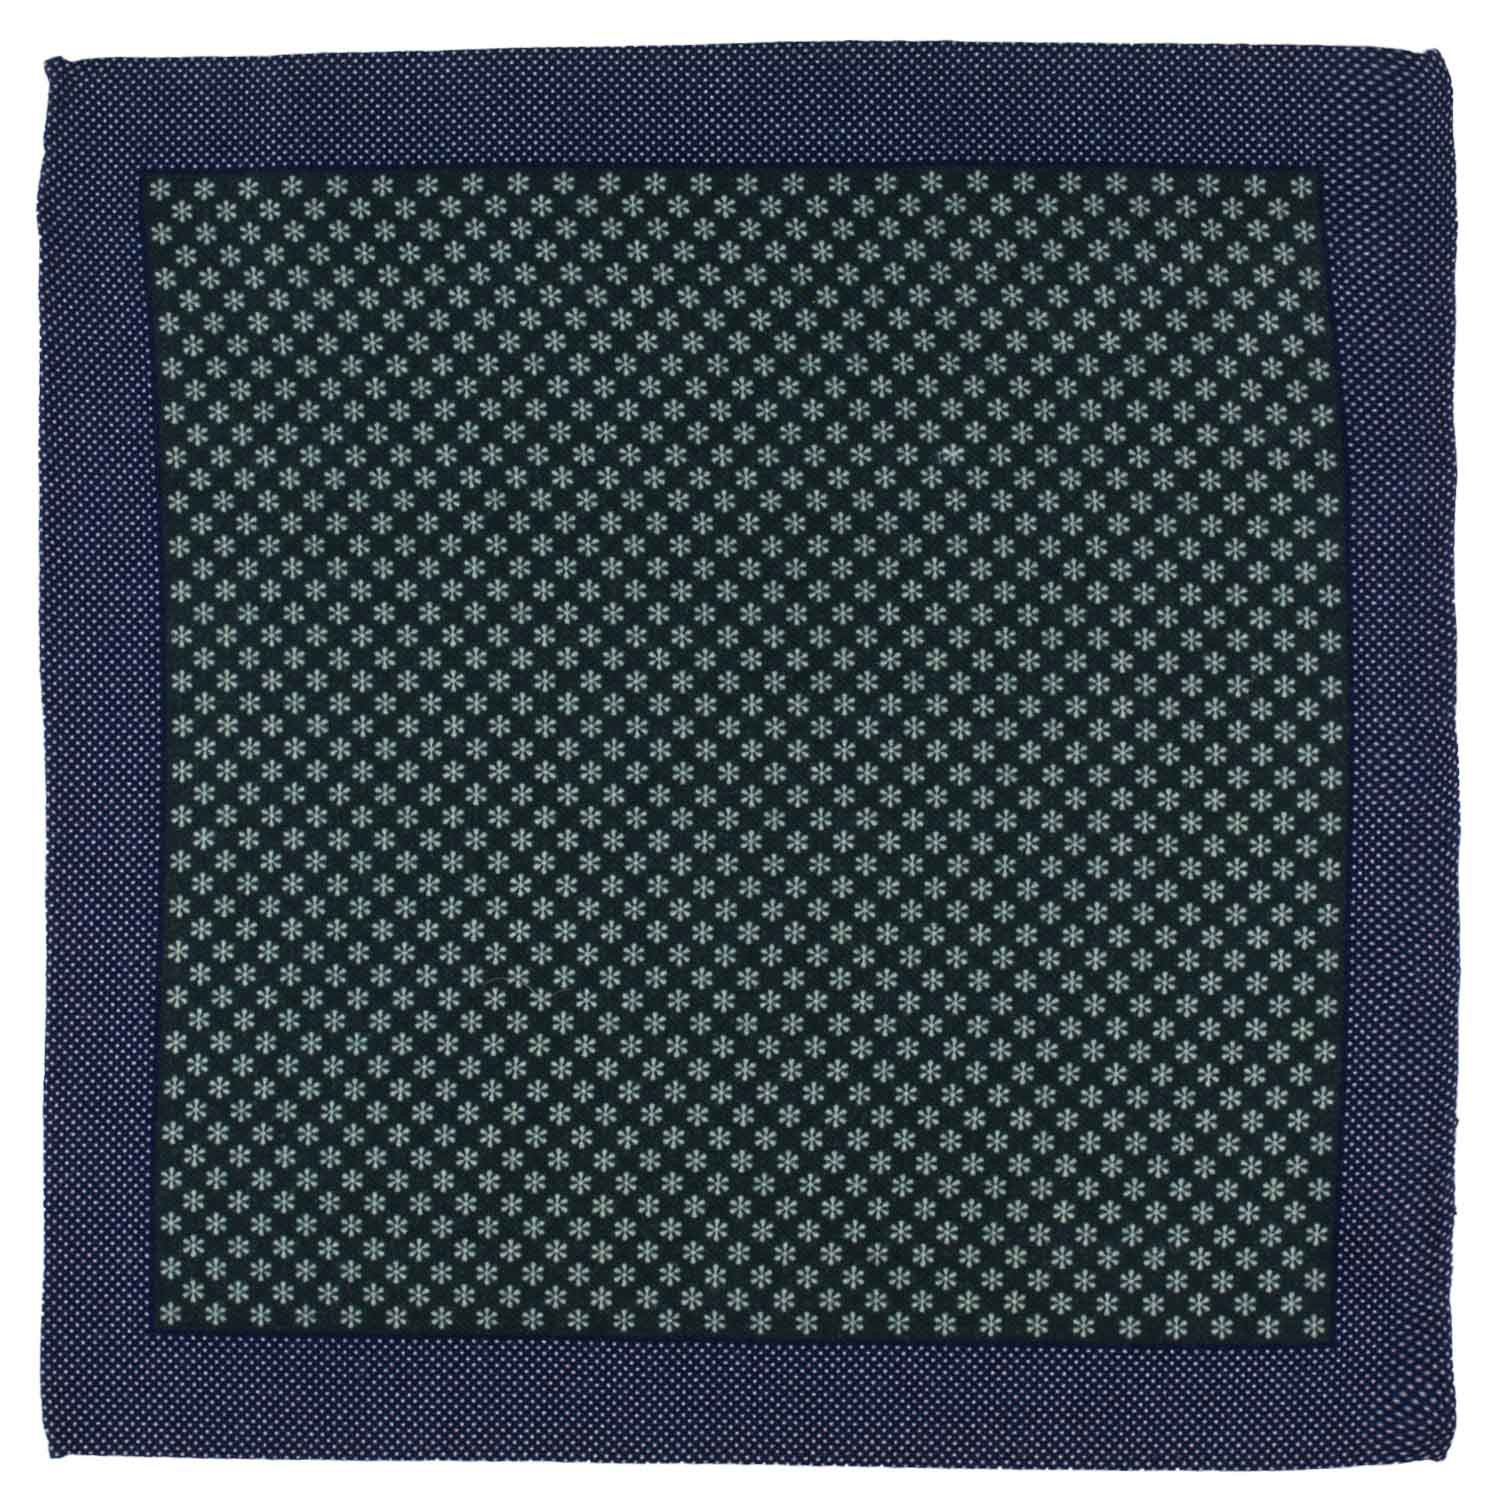 Medallion Floral Green Wool Pocket Square For Me By The Tie Hub